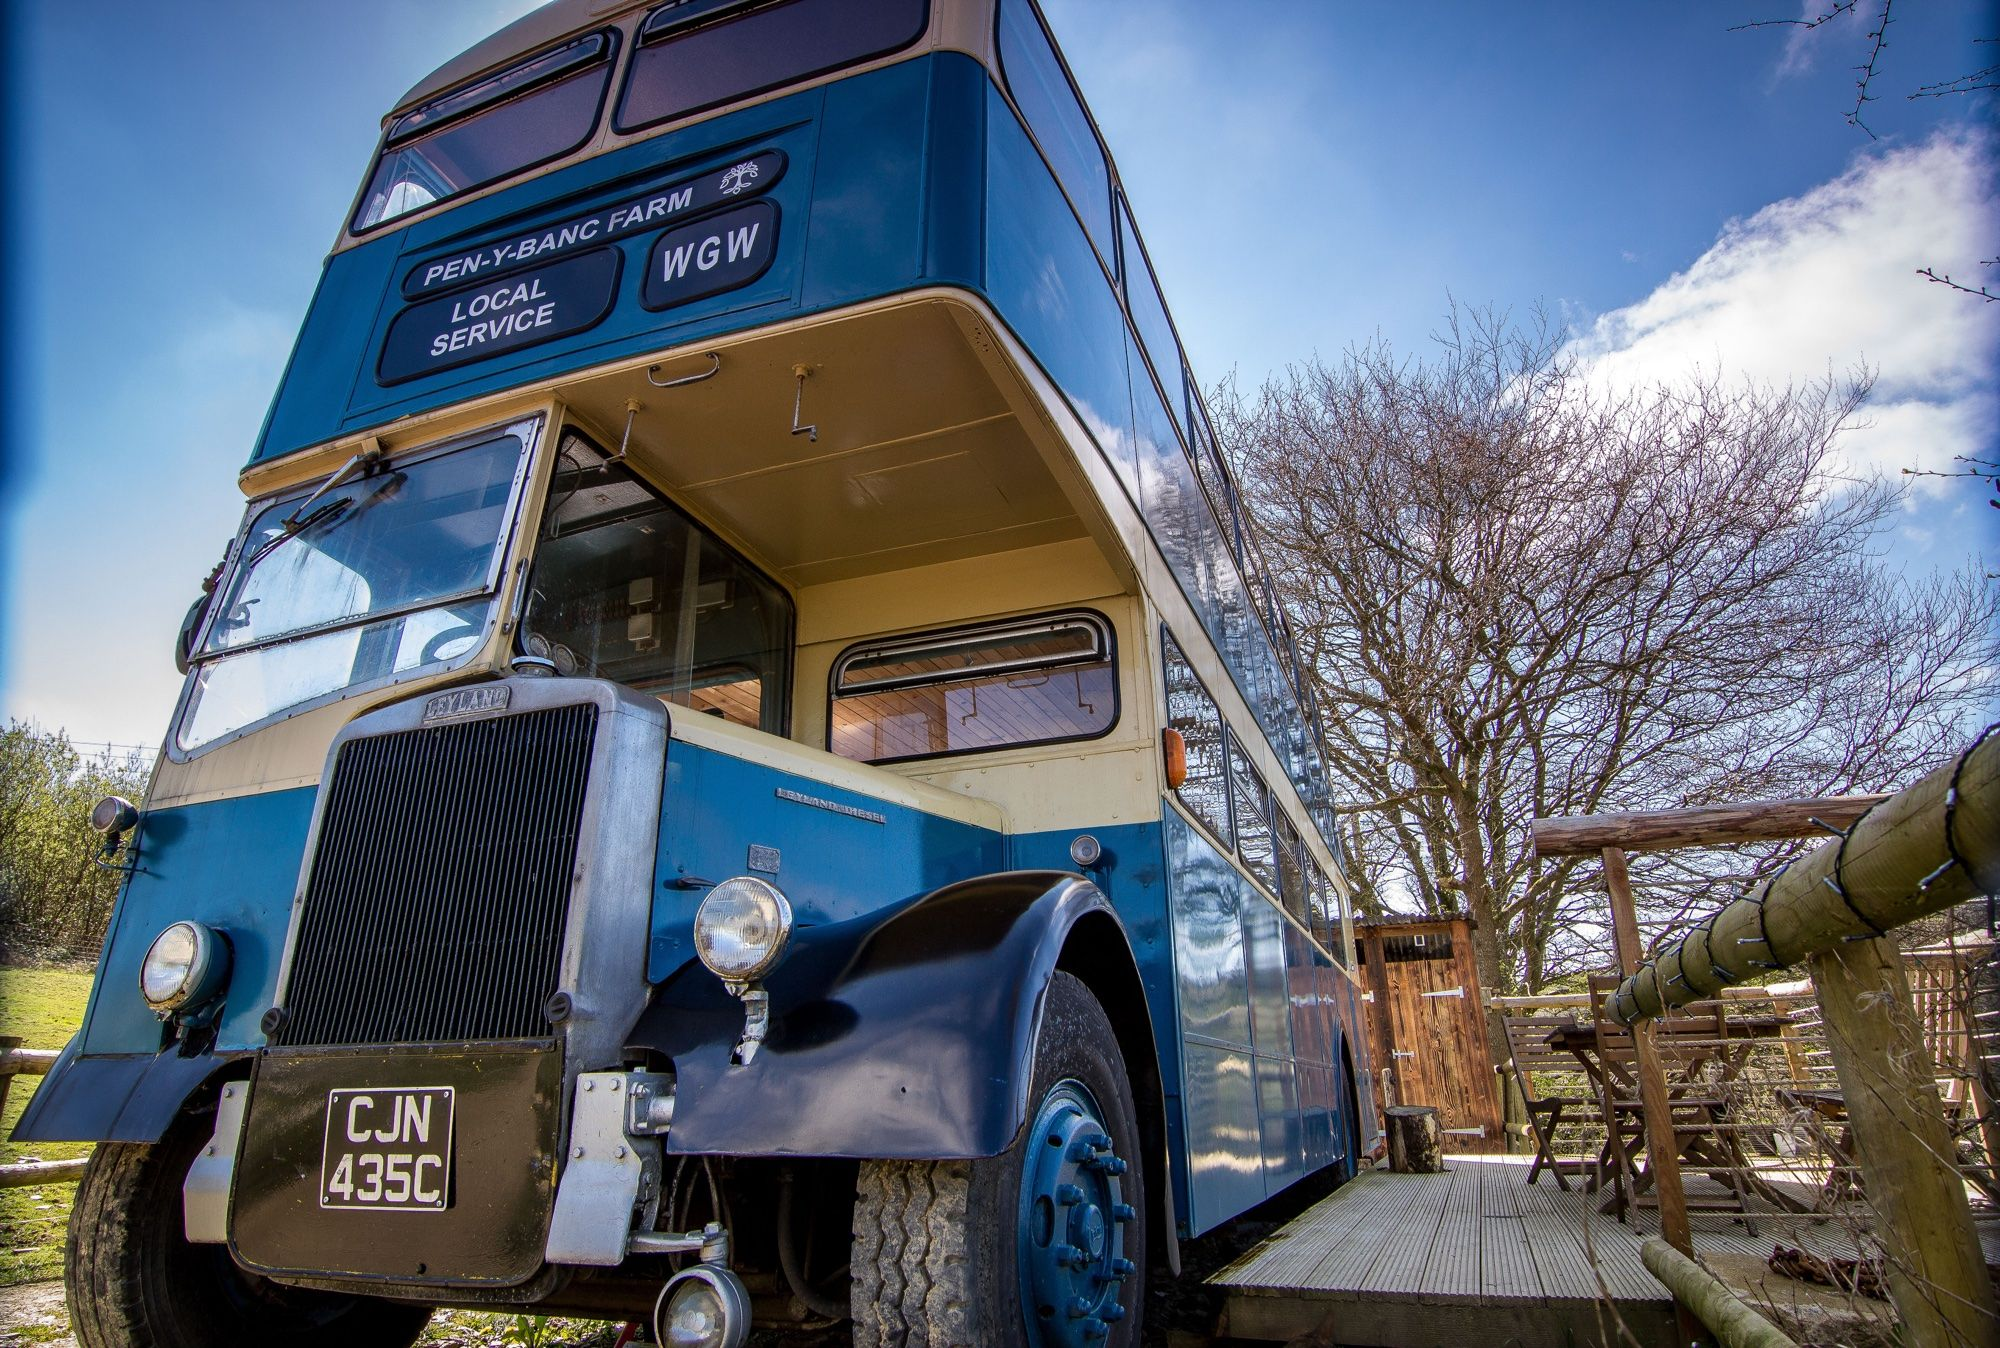 Stay in a converted vintage double-decker bus in the Welsh countryside